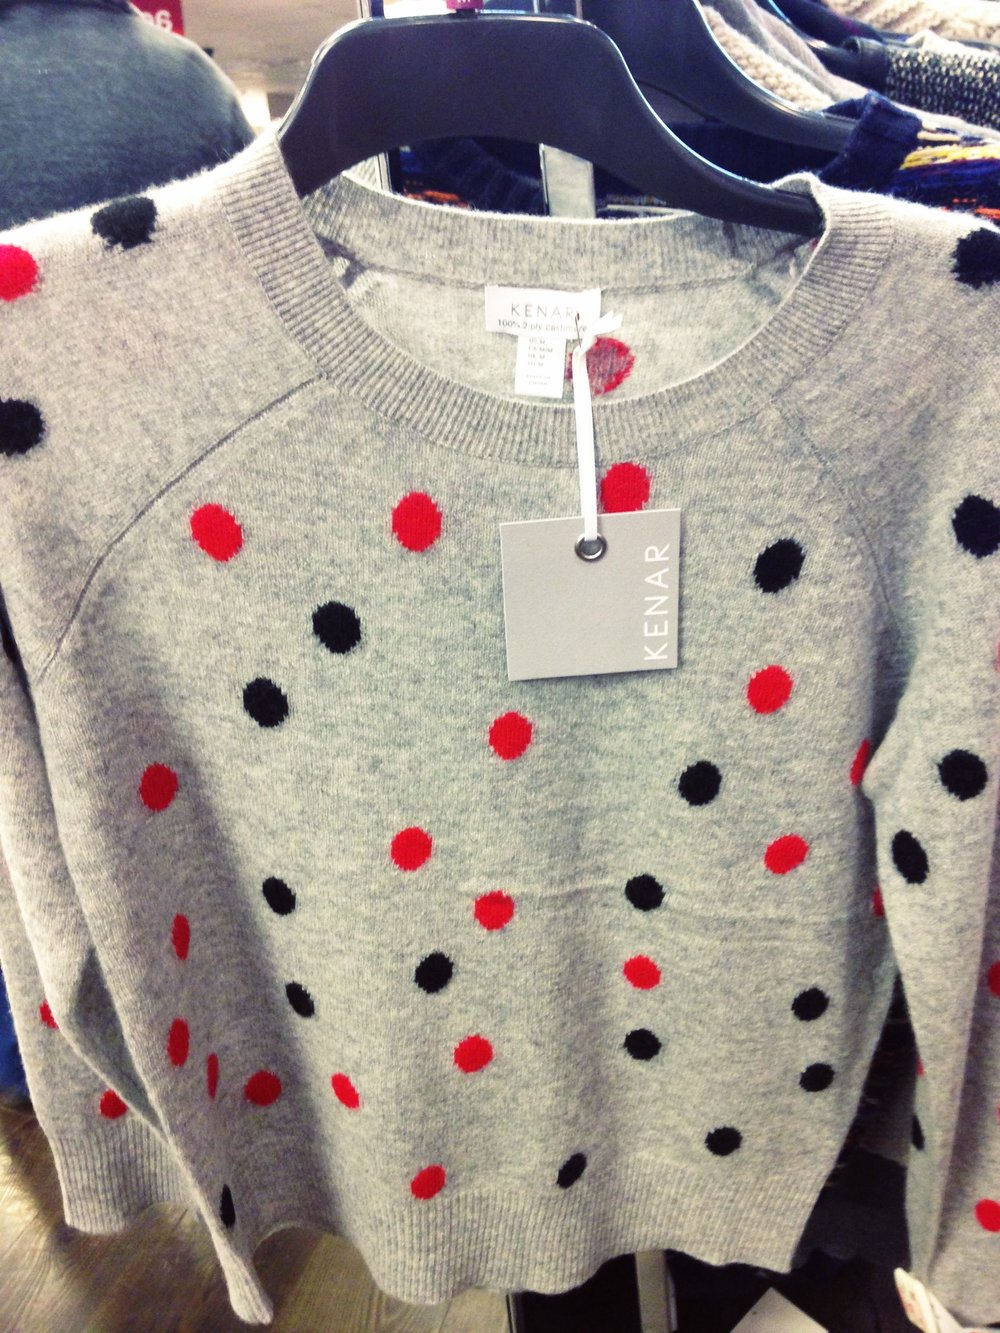 TK Maxx! Lovely cashmere sweater, pale grey with polka dots by Kenar. €69.99